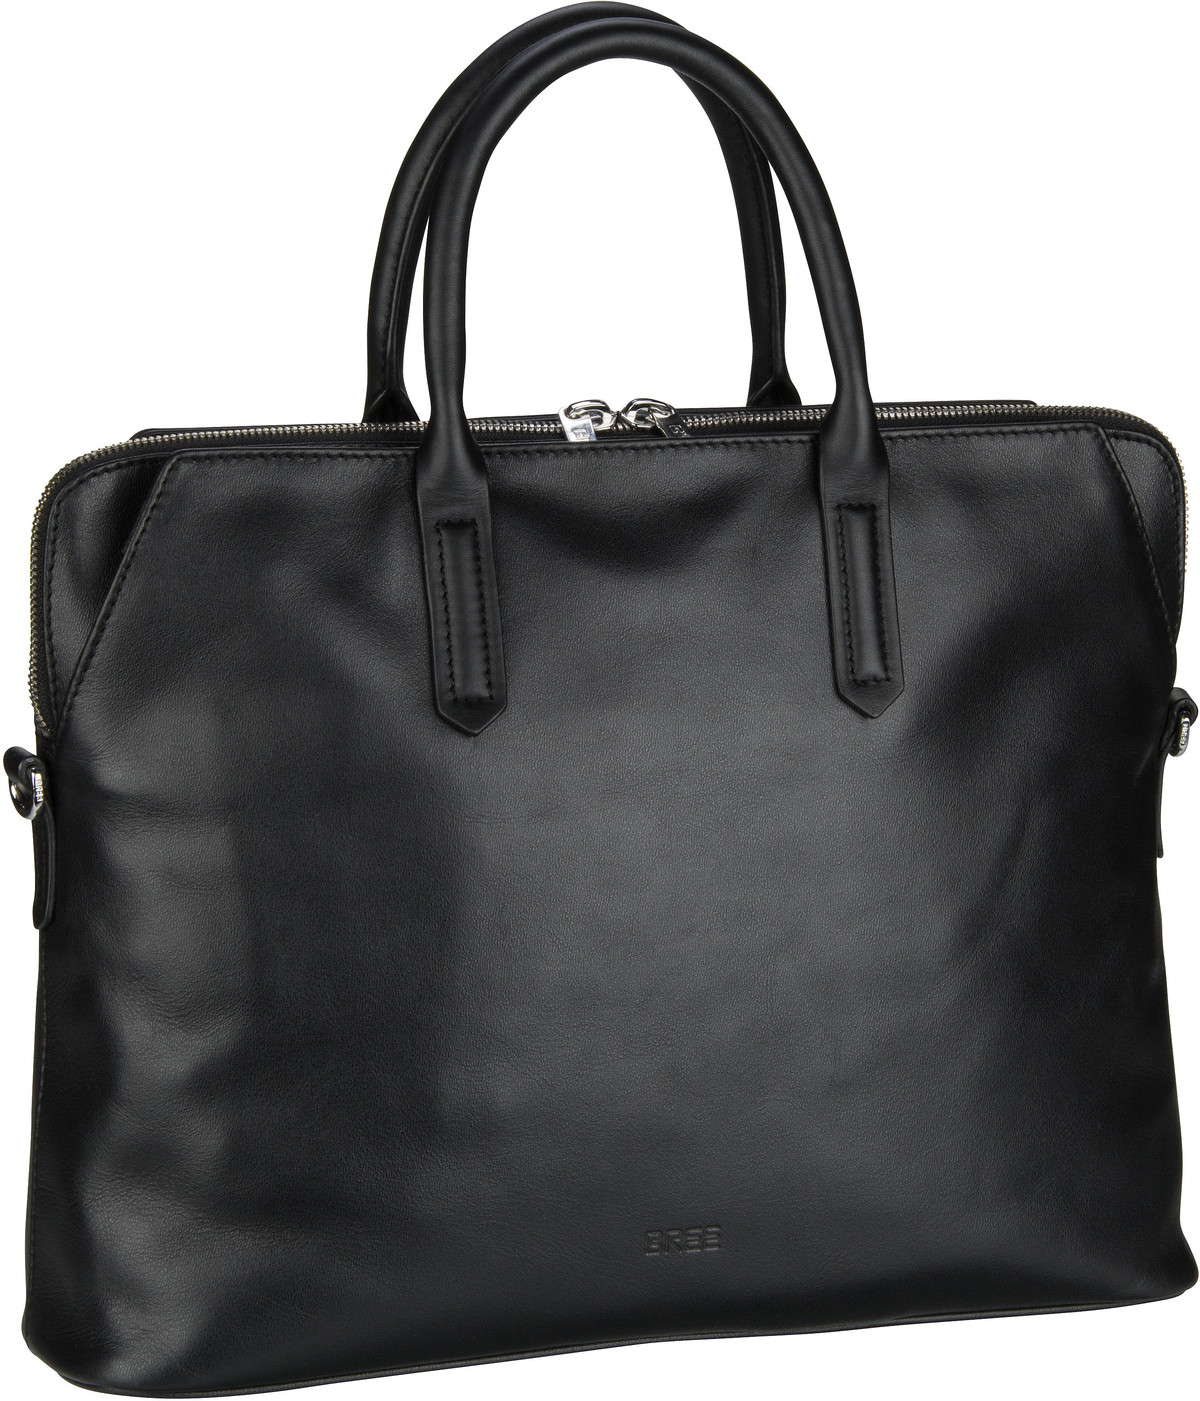 Handtasche Chicago 7 Black